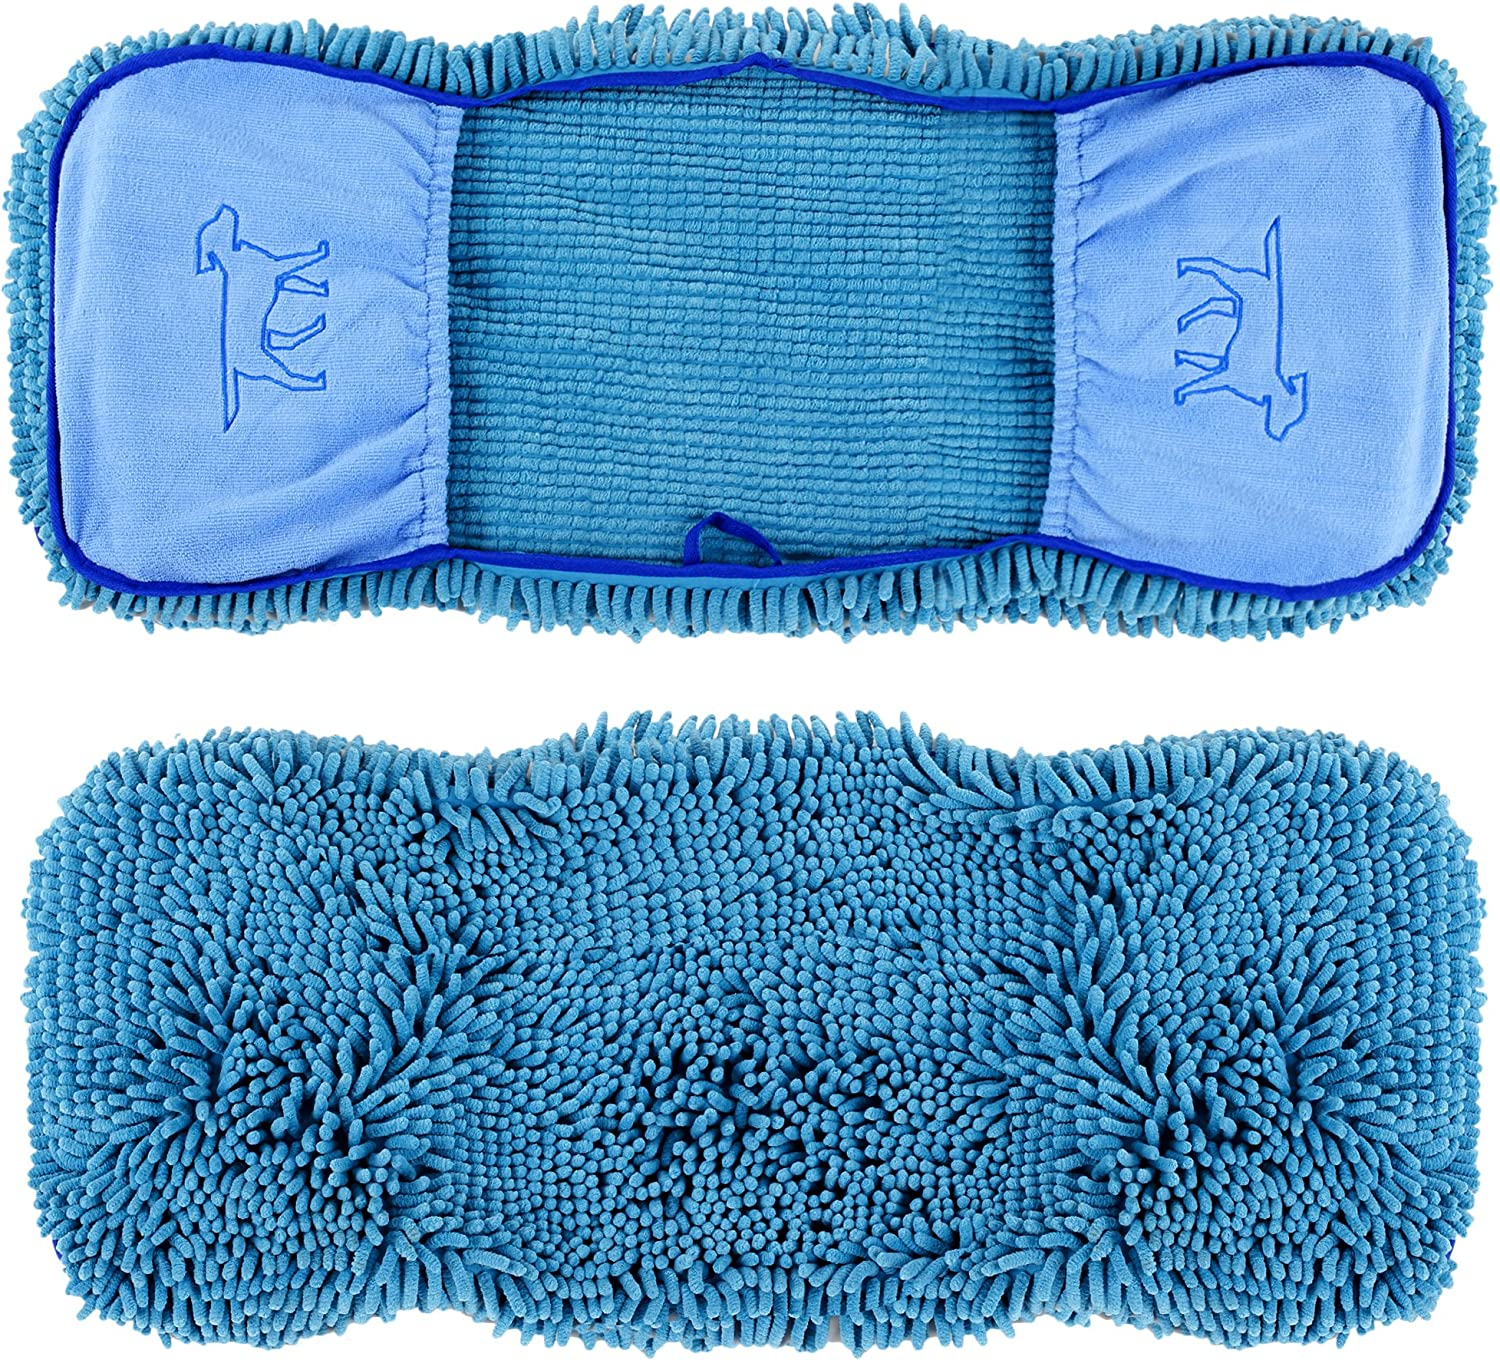 Tuff Pupper Large Chenille Microfiber Dog Drying Towel